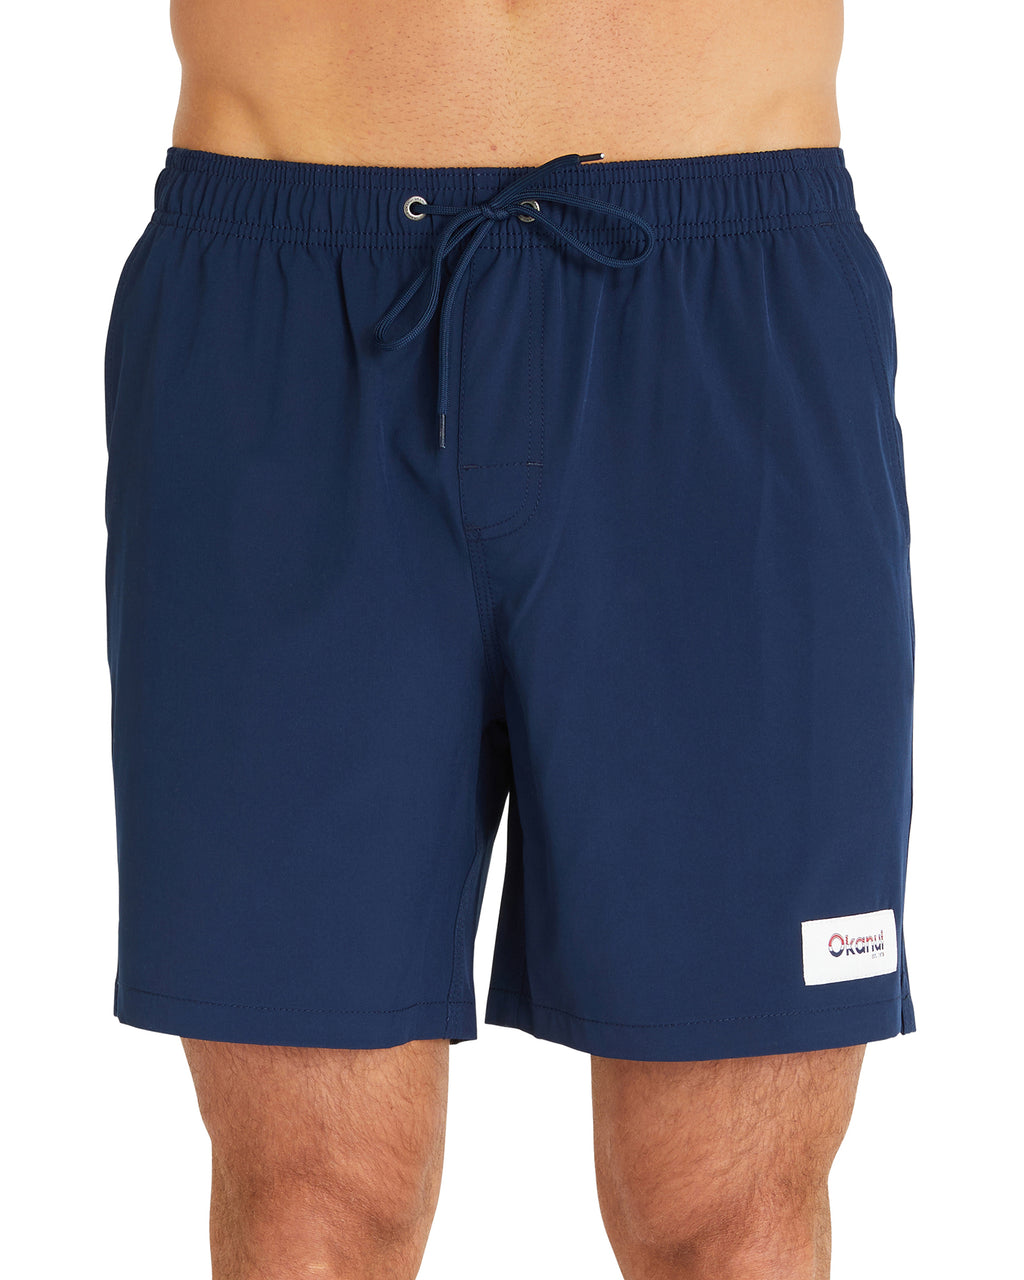 Swim Short - Classic Plain - Navy